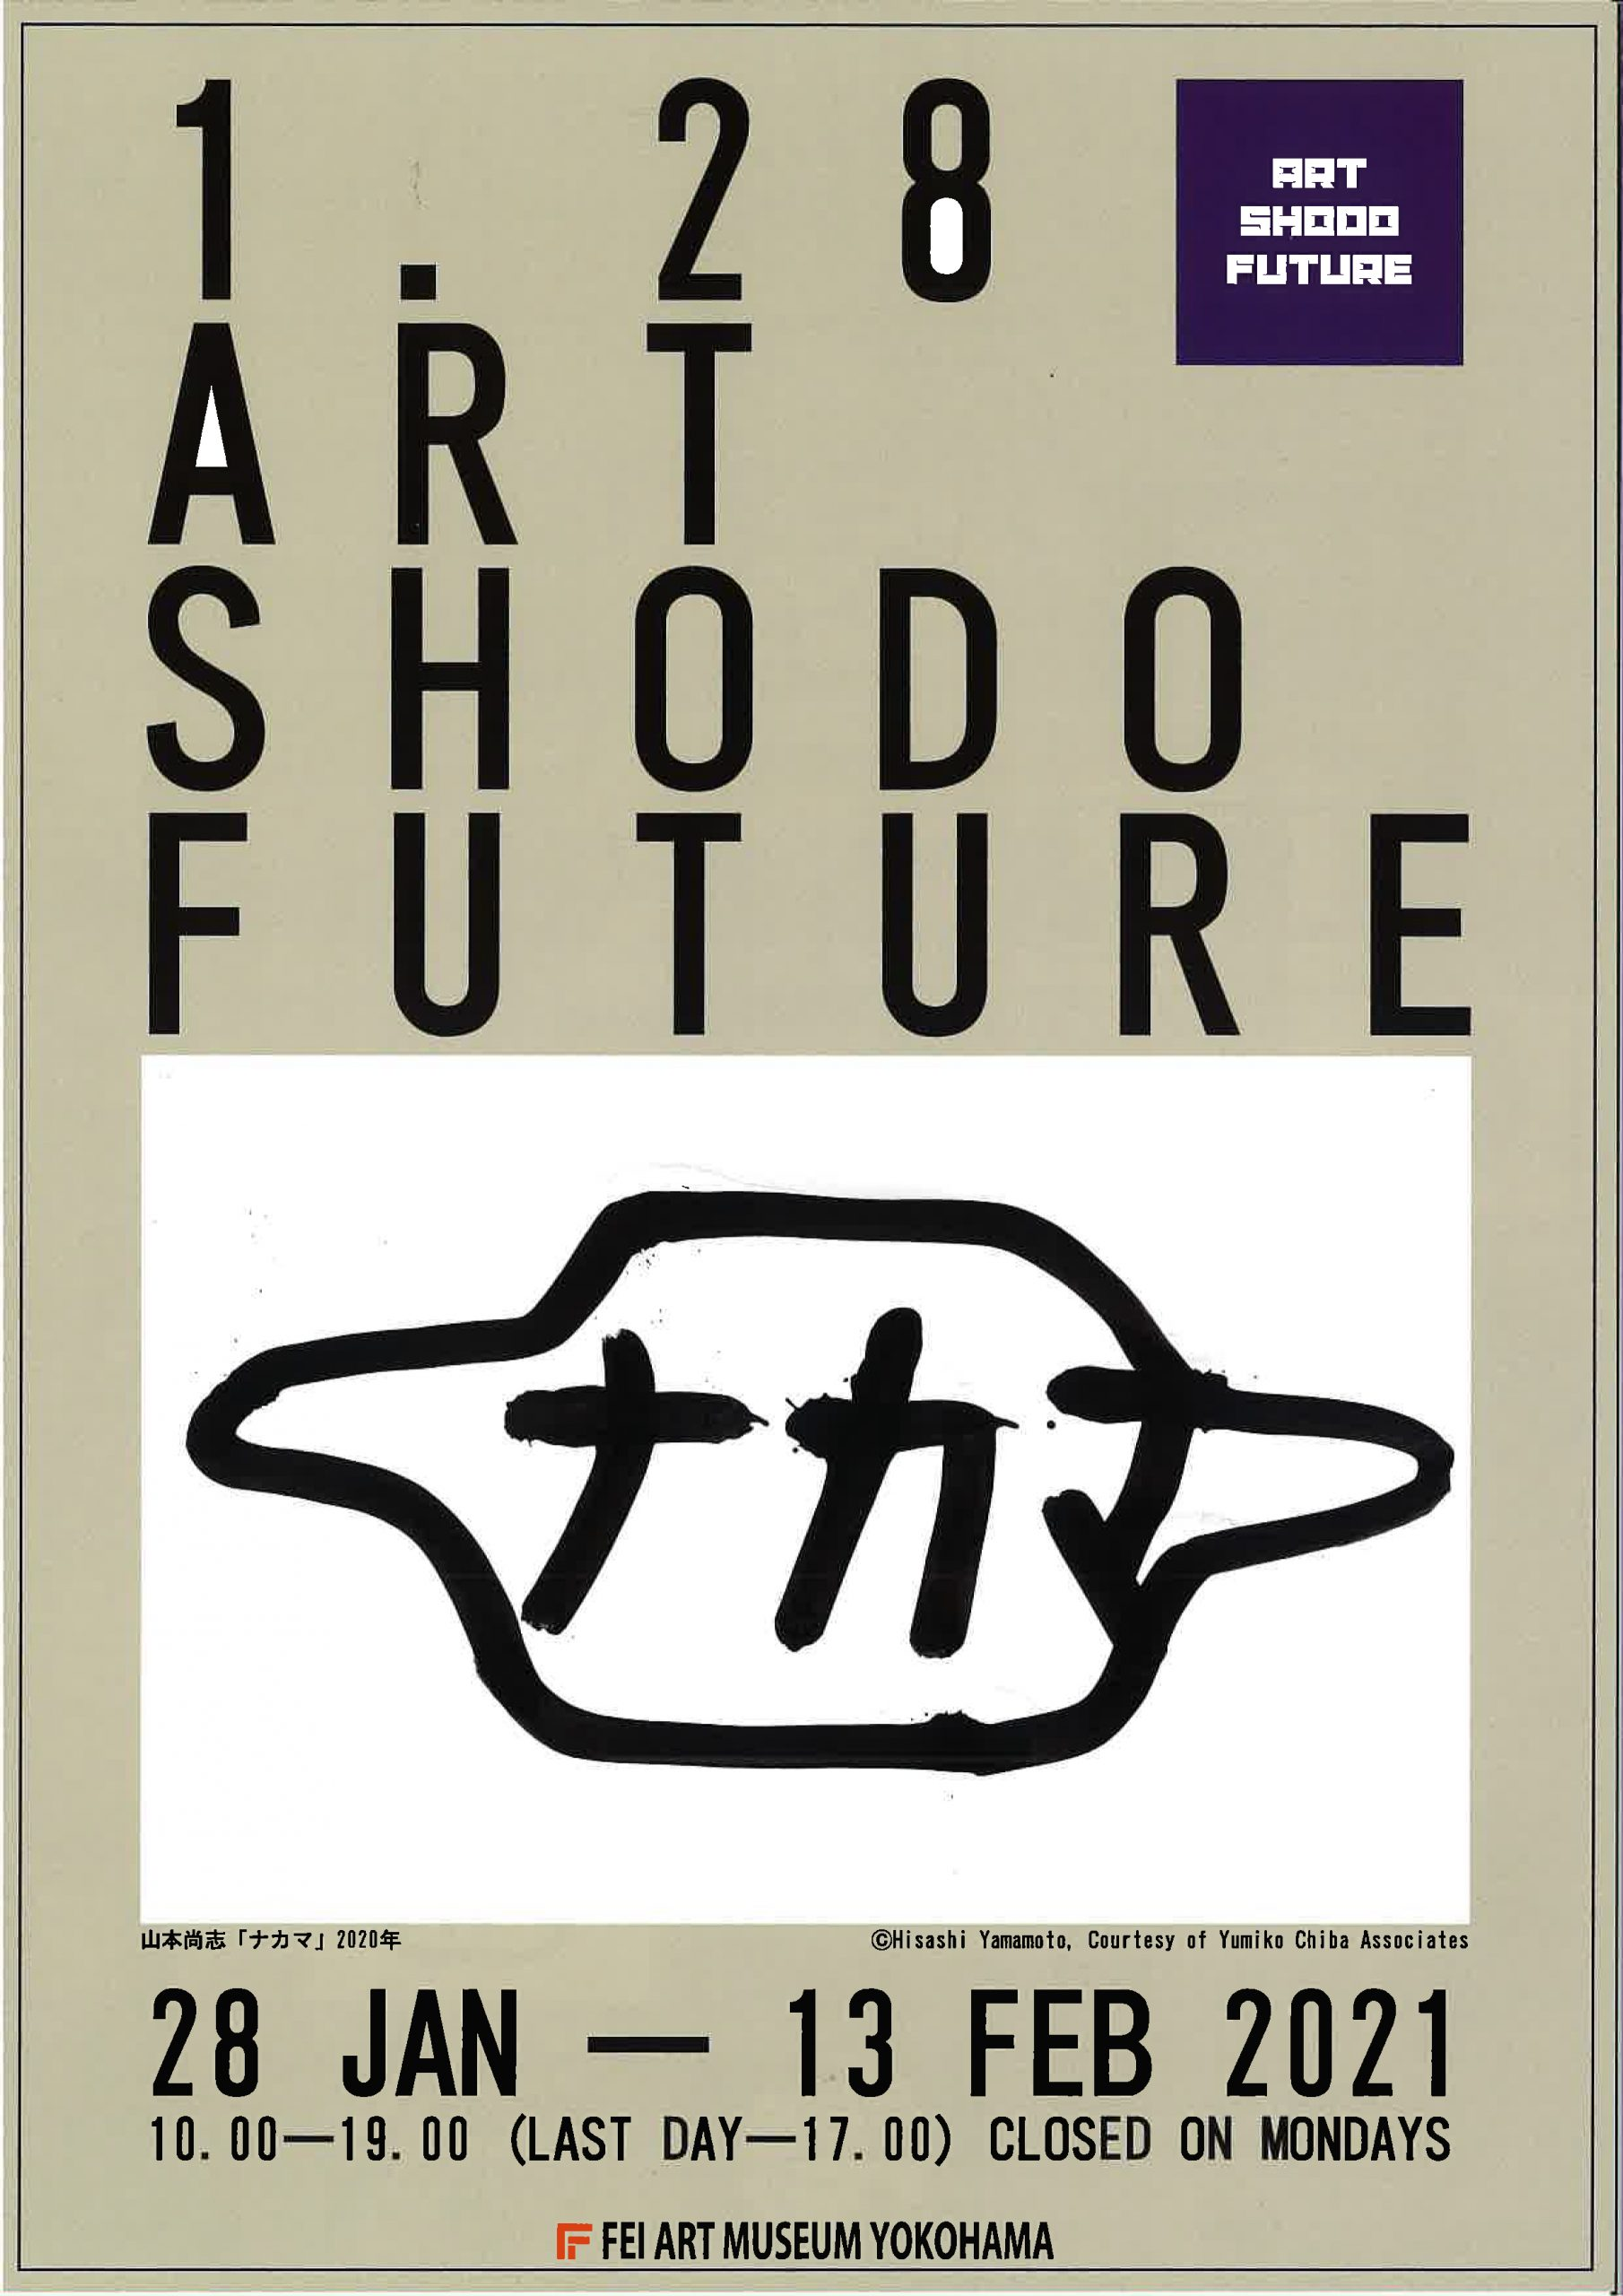 【展覧会情報】ART SHODO FUTURE